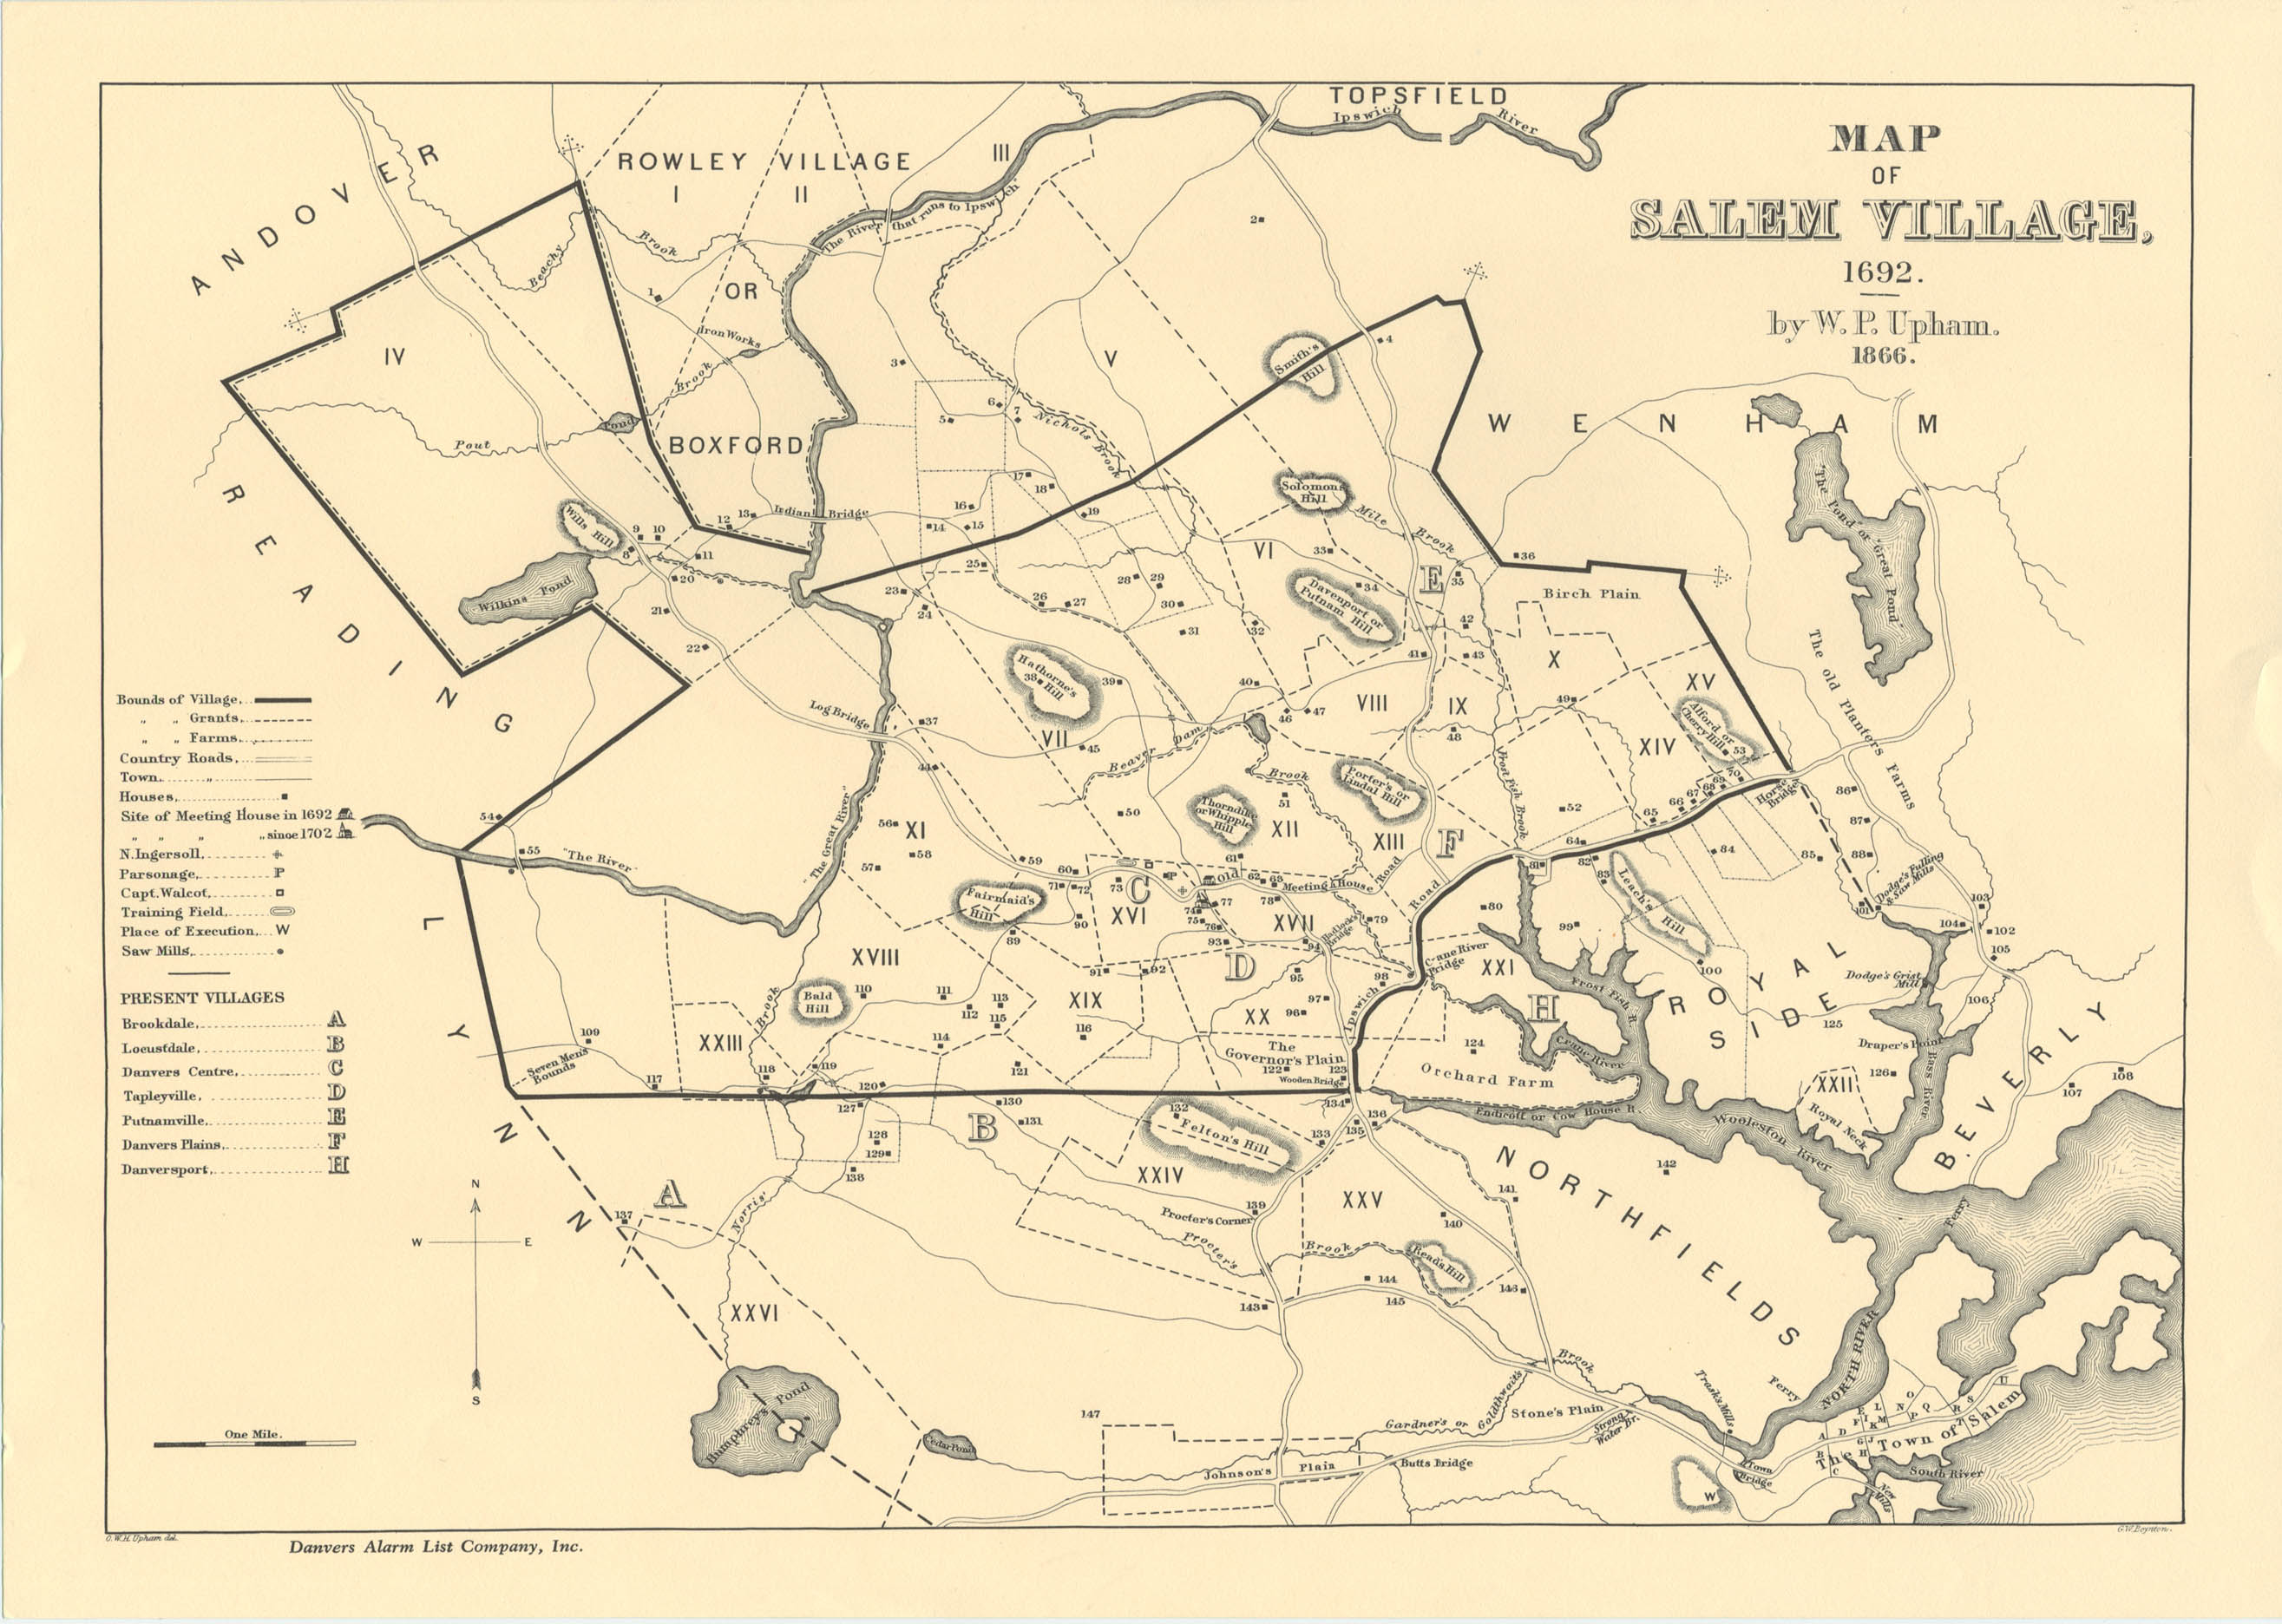 an overview of the salem witch trials and their aftermath Overview and scope of project the goal of this project is to discover our  ancestors  ancestors involved in the notorious salem witch trials, validate their  family trees and  the salem witch trials were a series of hearings before local  magistrates  aftermath on 22 september 1693, the last of the so-called  witches were.